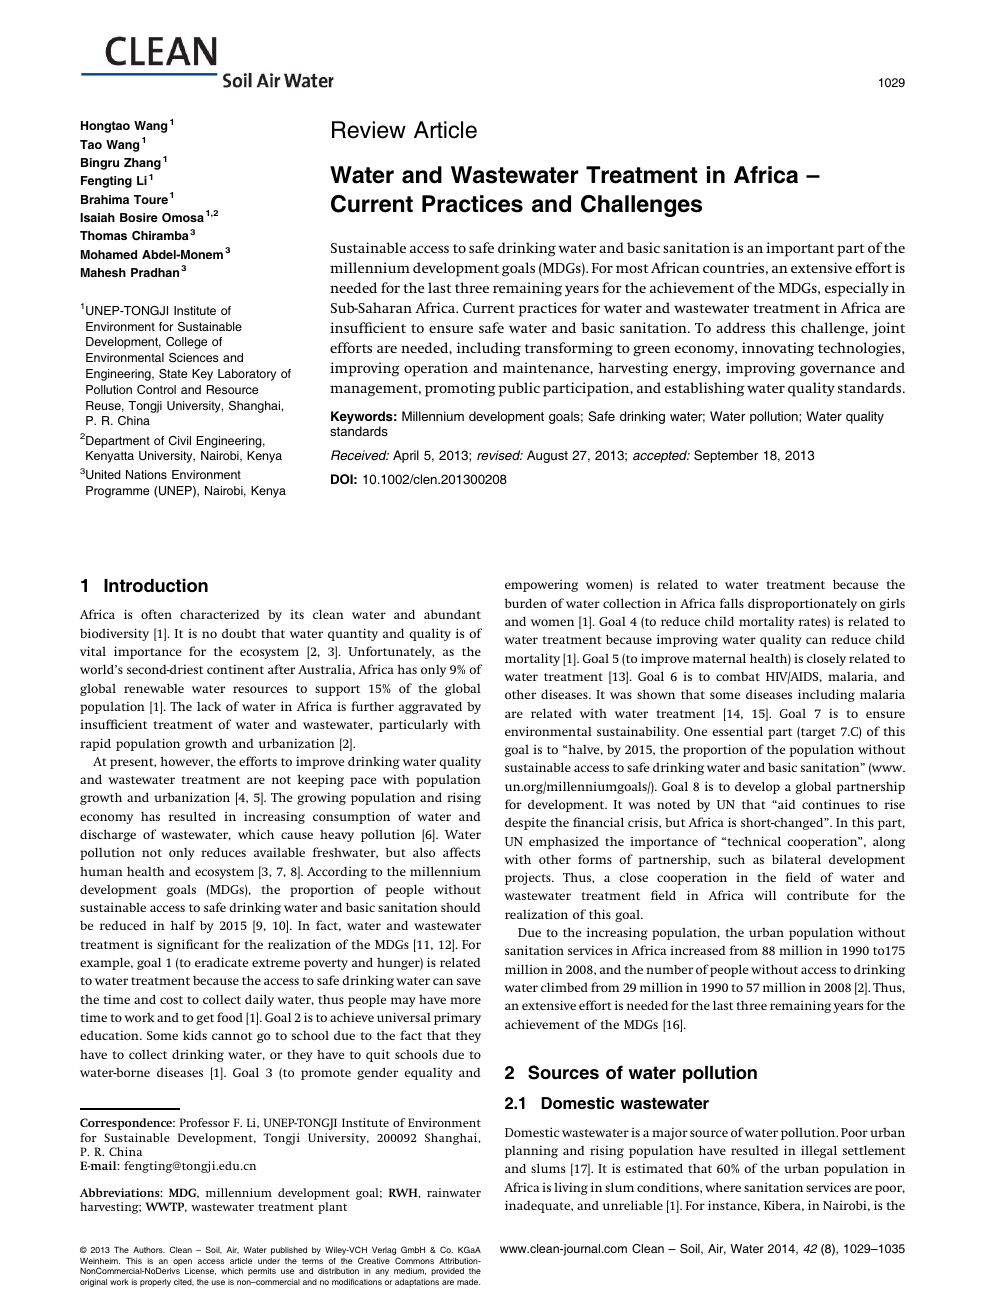 Water and Wastewater Treatment in Africa - Current Practices and